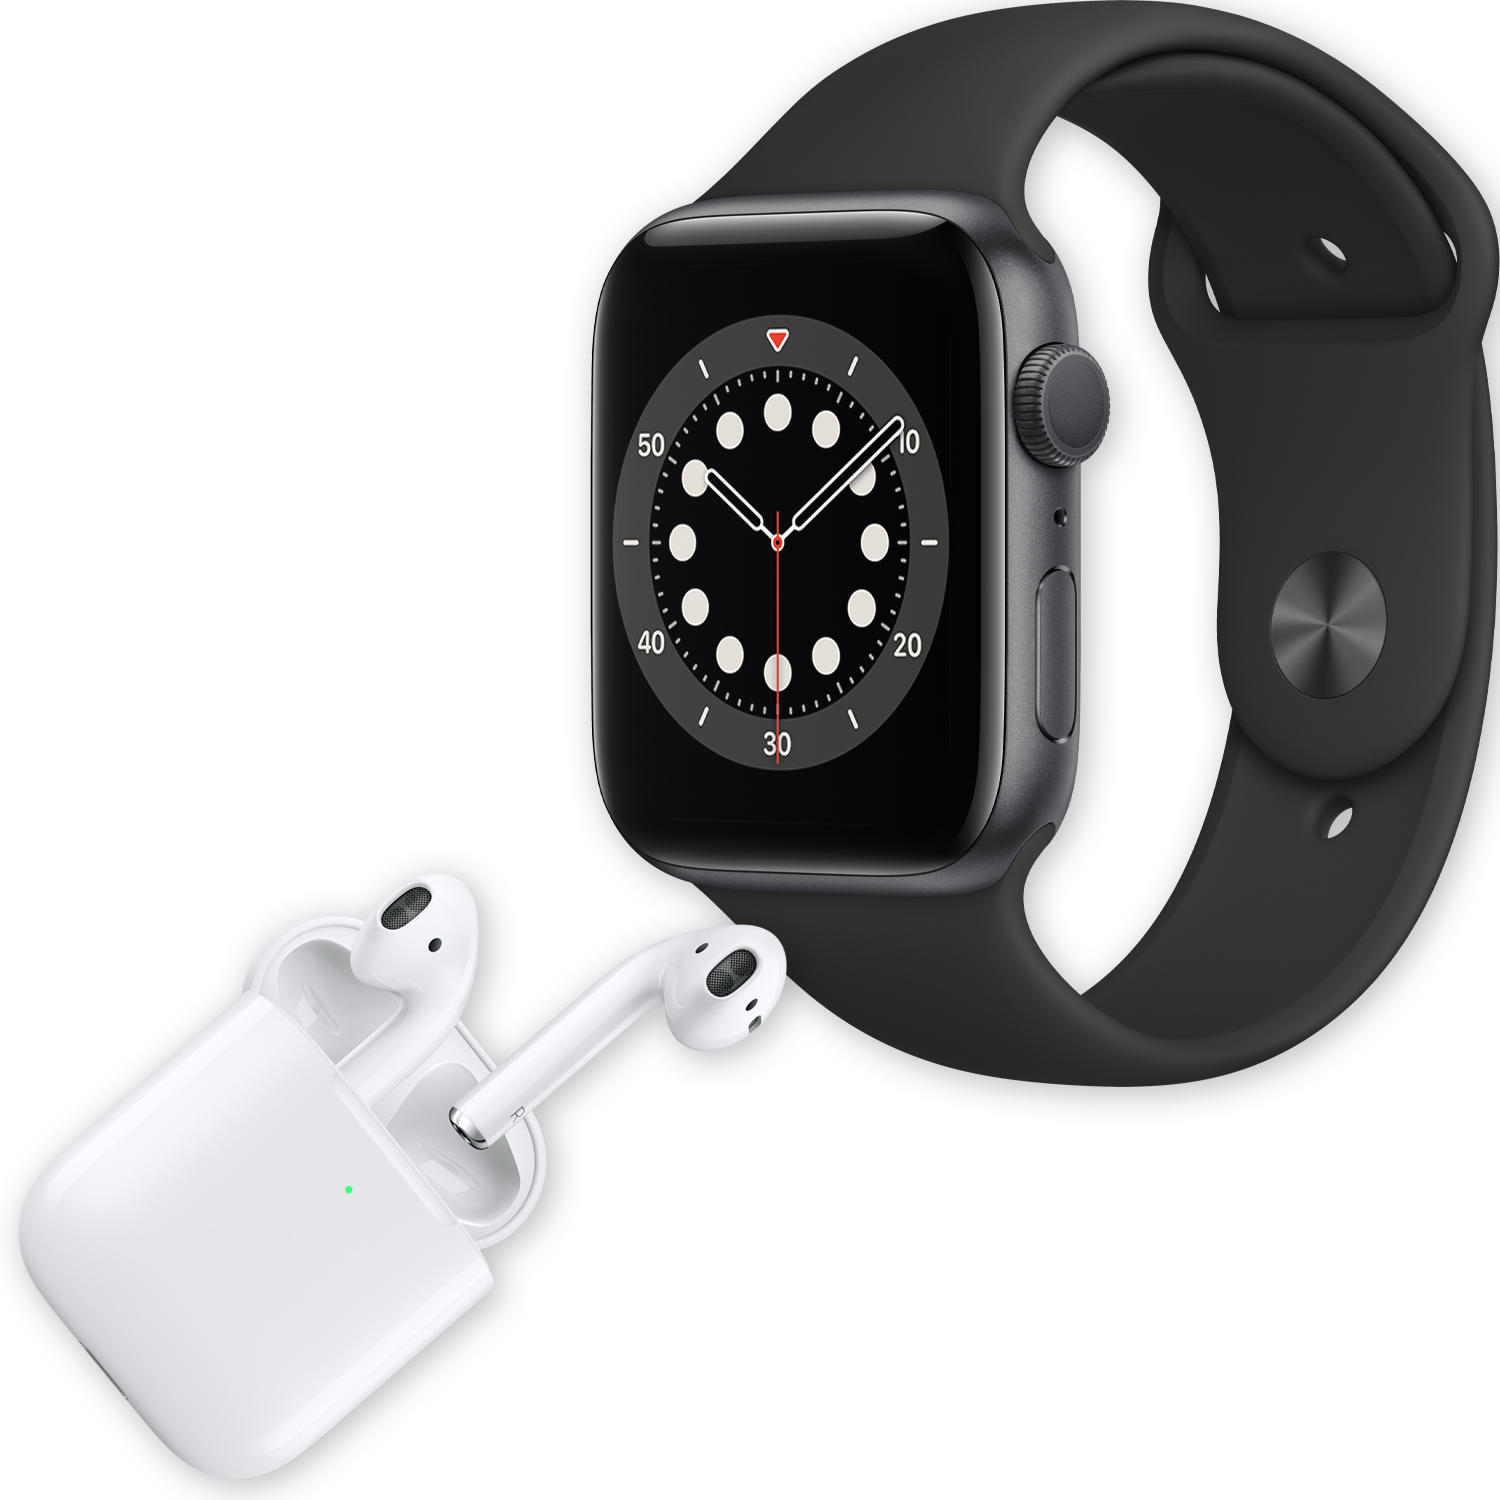 Apple Watch Series 6 44mm GPS Smartwatch (Space Gray Aluminum Case with Black Sport Band) + Apple AirPods with Wireless Charging Case (2nd Generation)